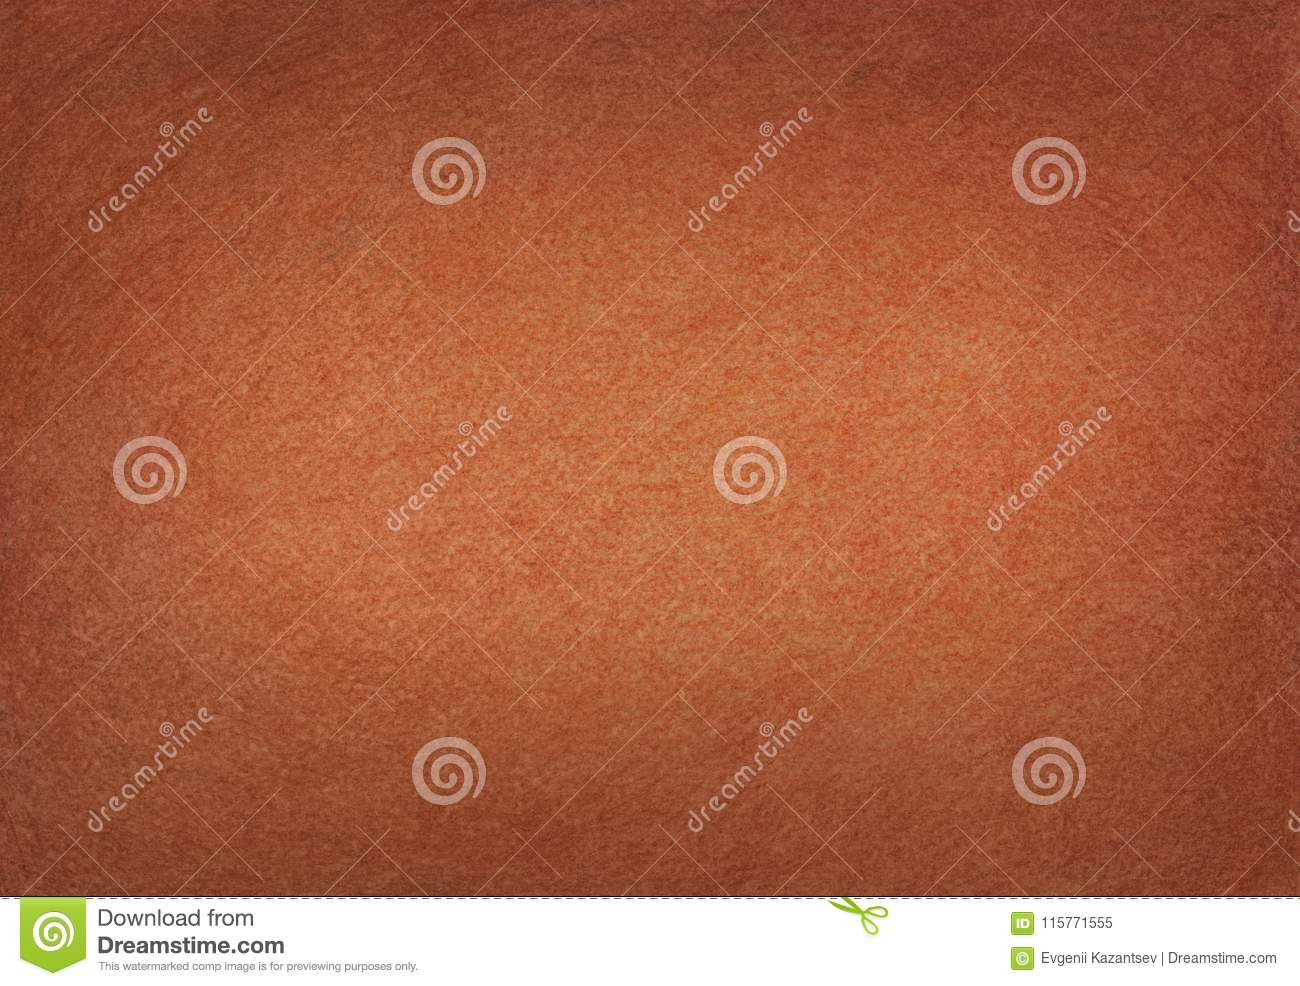 Background pattern with colored pastel. Brown